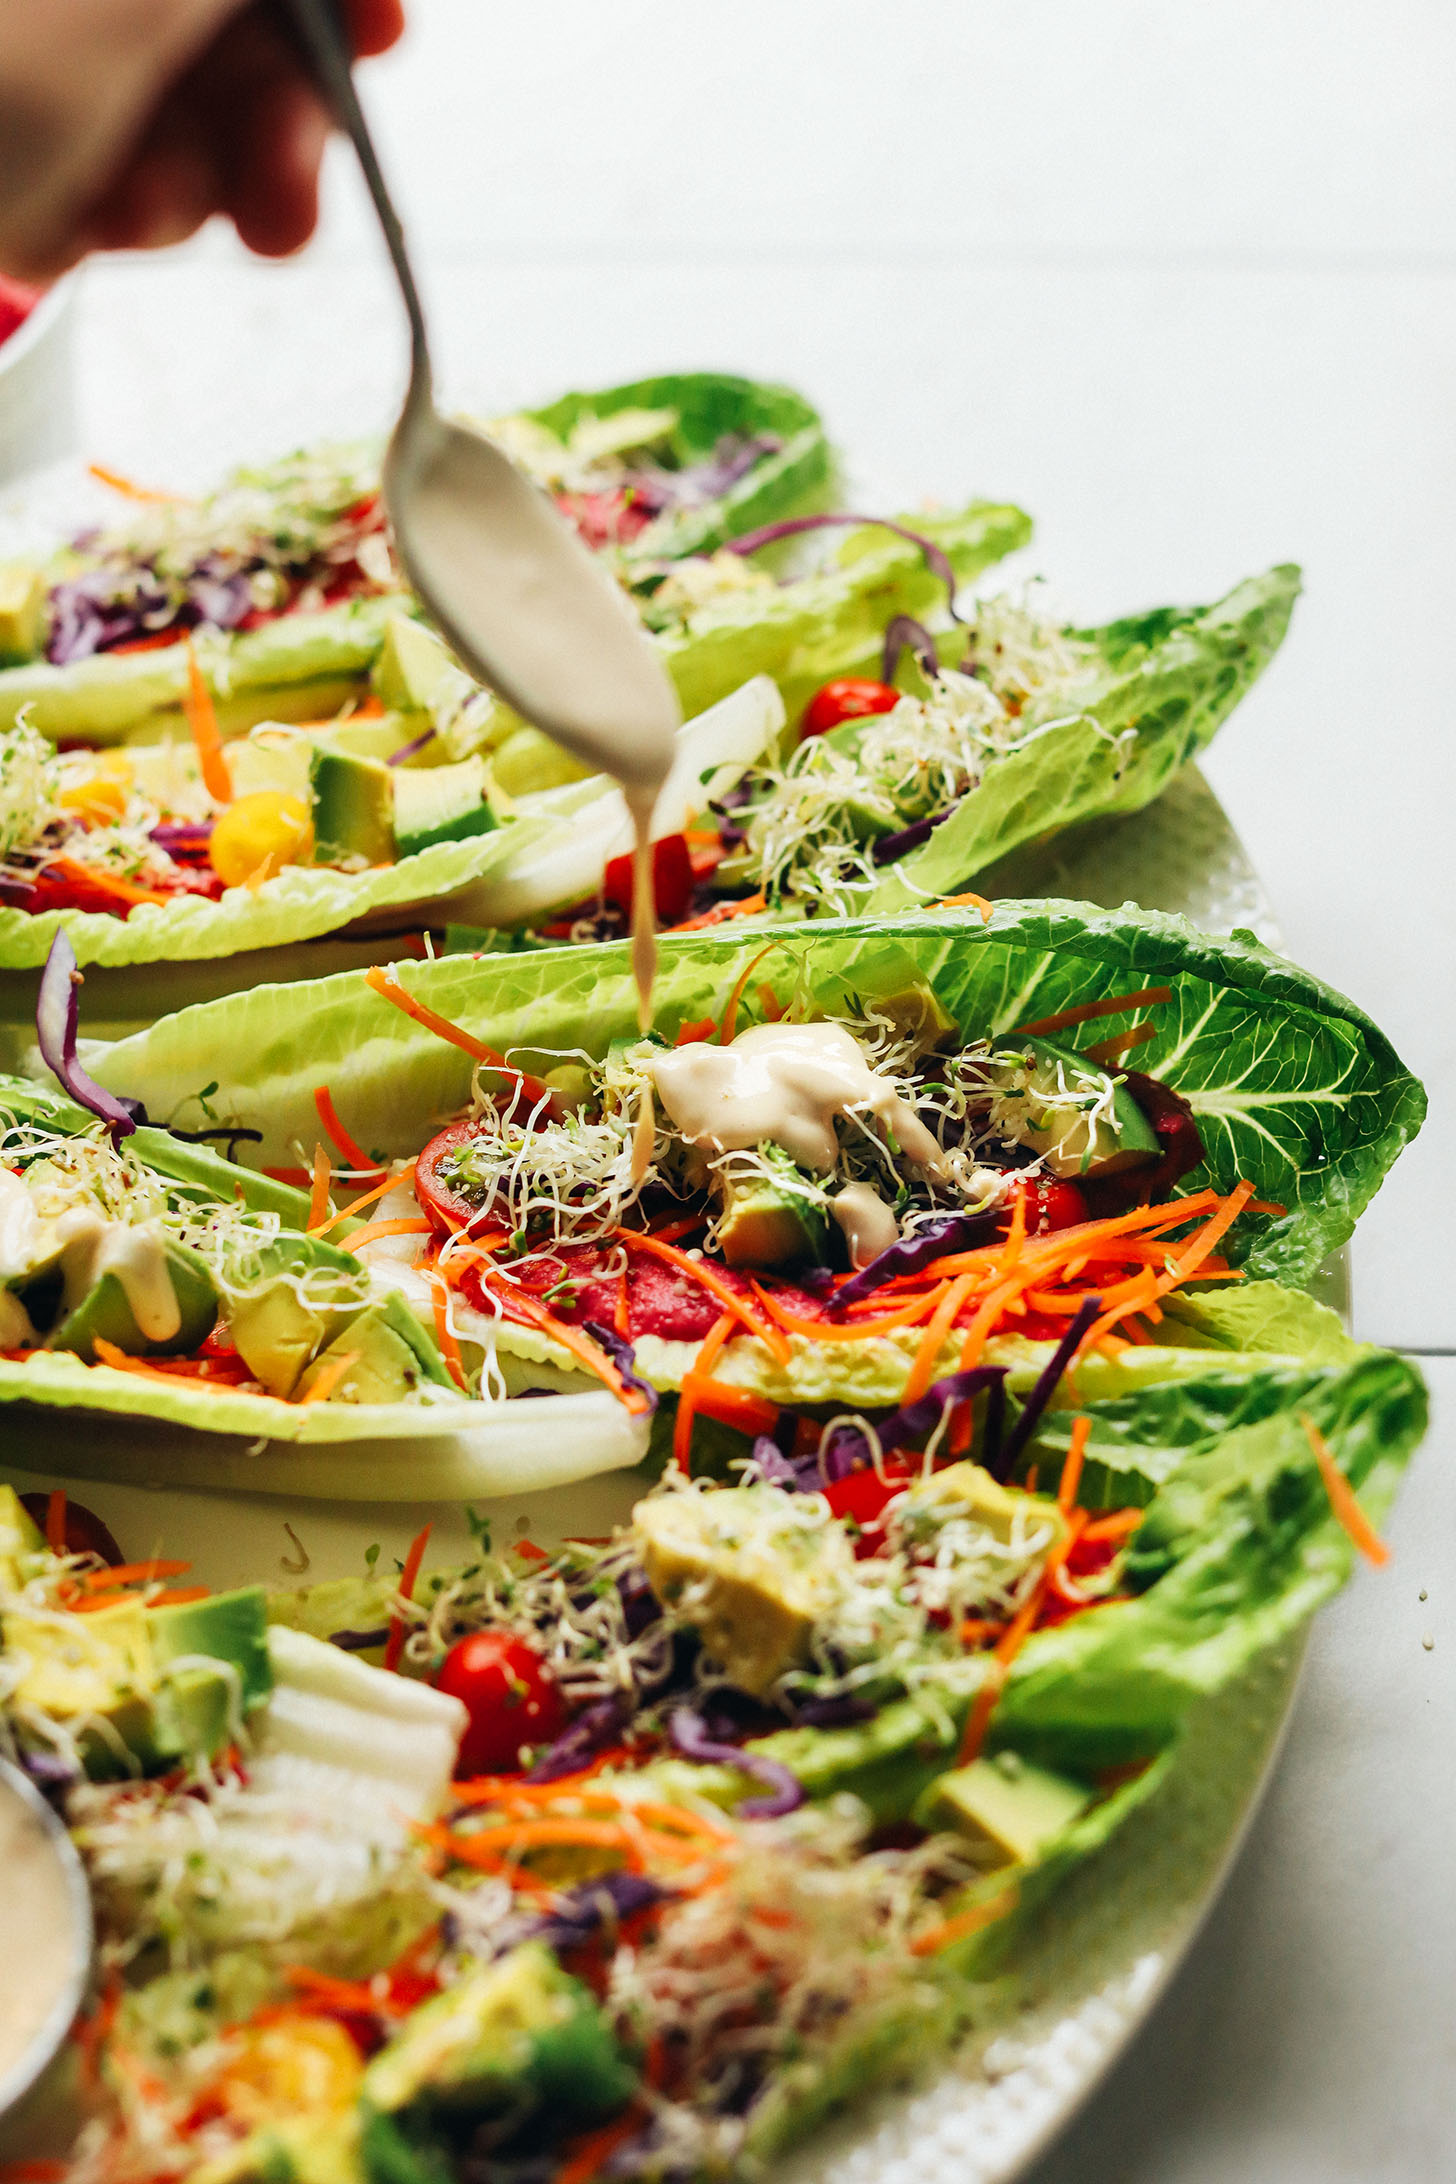 Drizzling tahini dressing onto Raw Romaine Taco Boats for a refreshing vegan meal